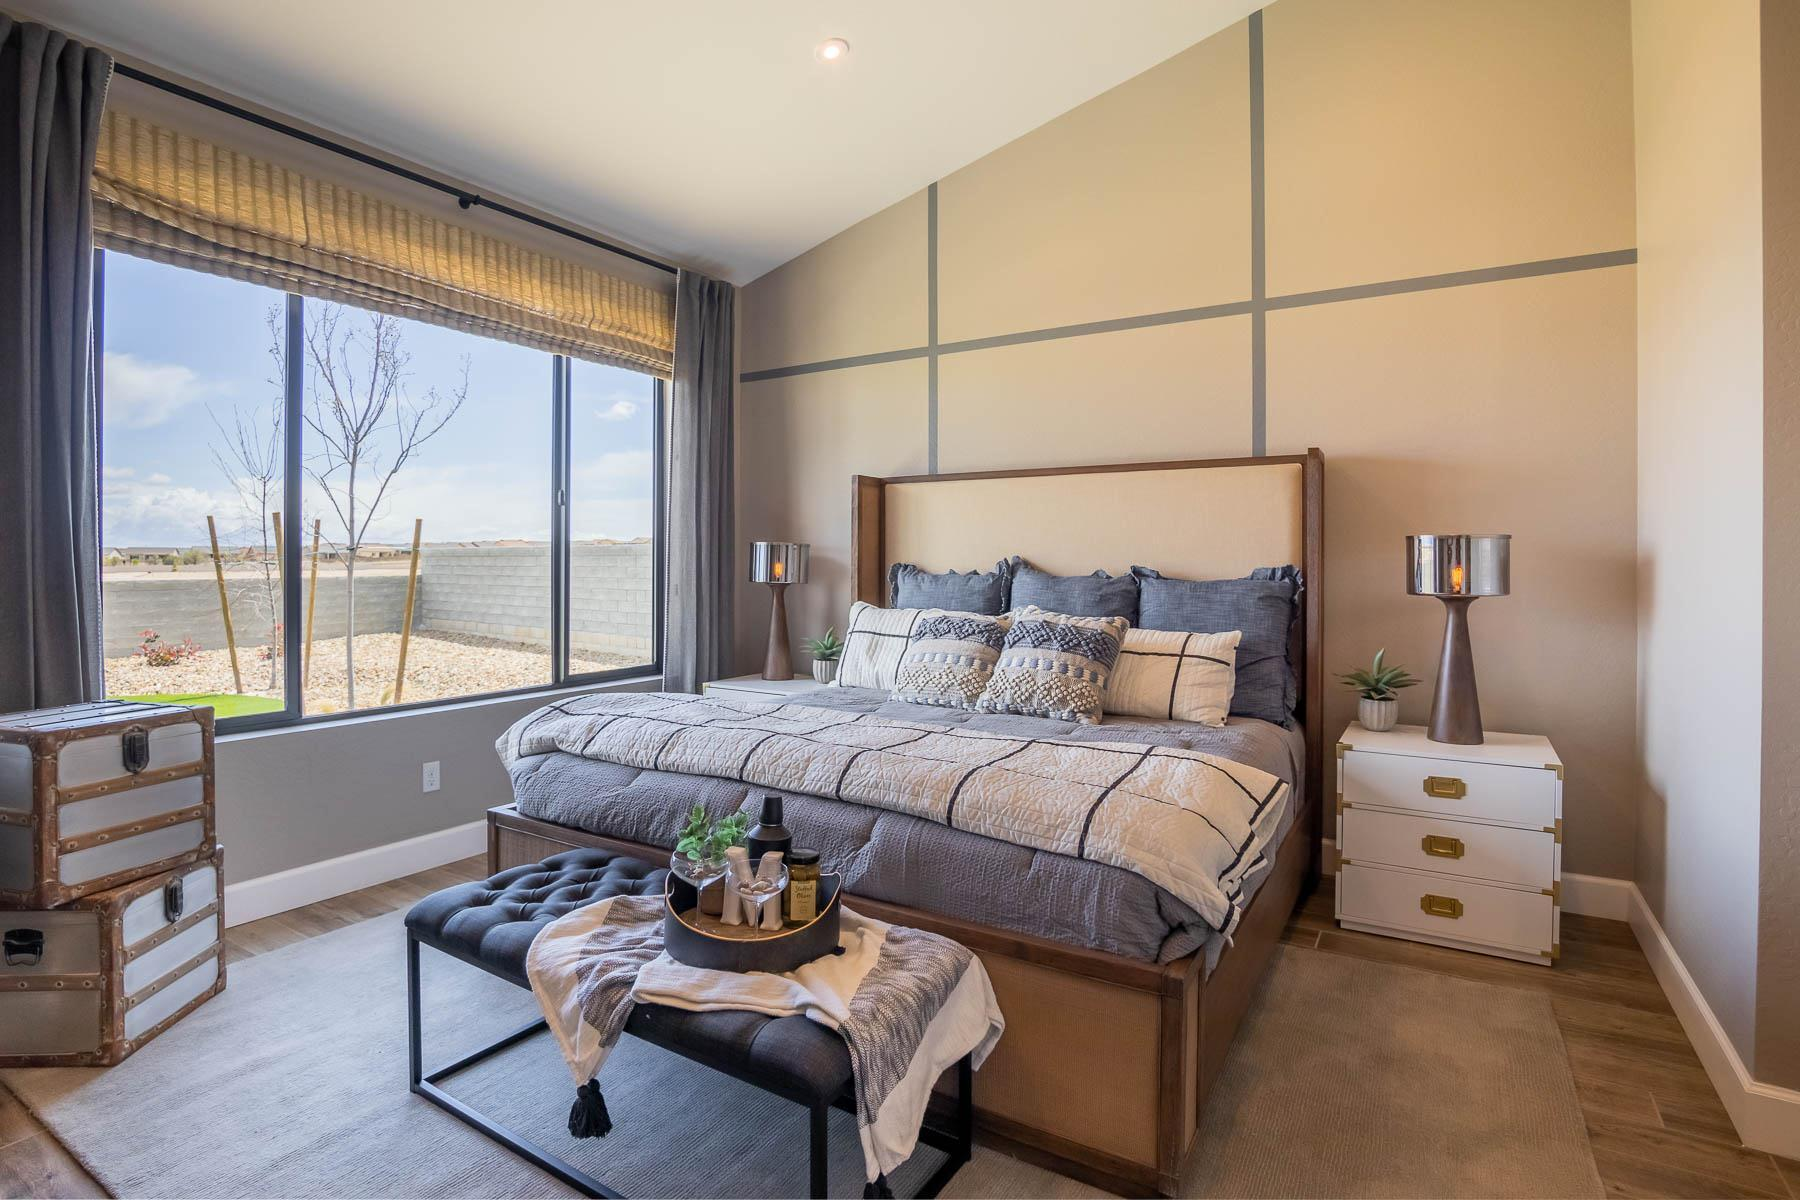 Bedroom featured in the J604 By Mandalay Homes in Prescott, AZ